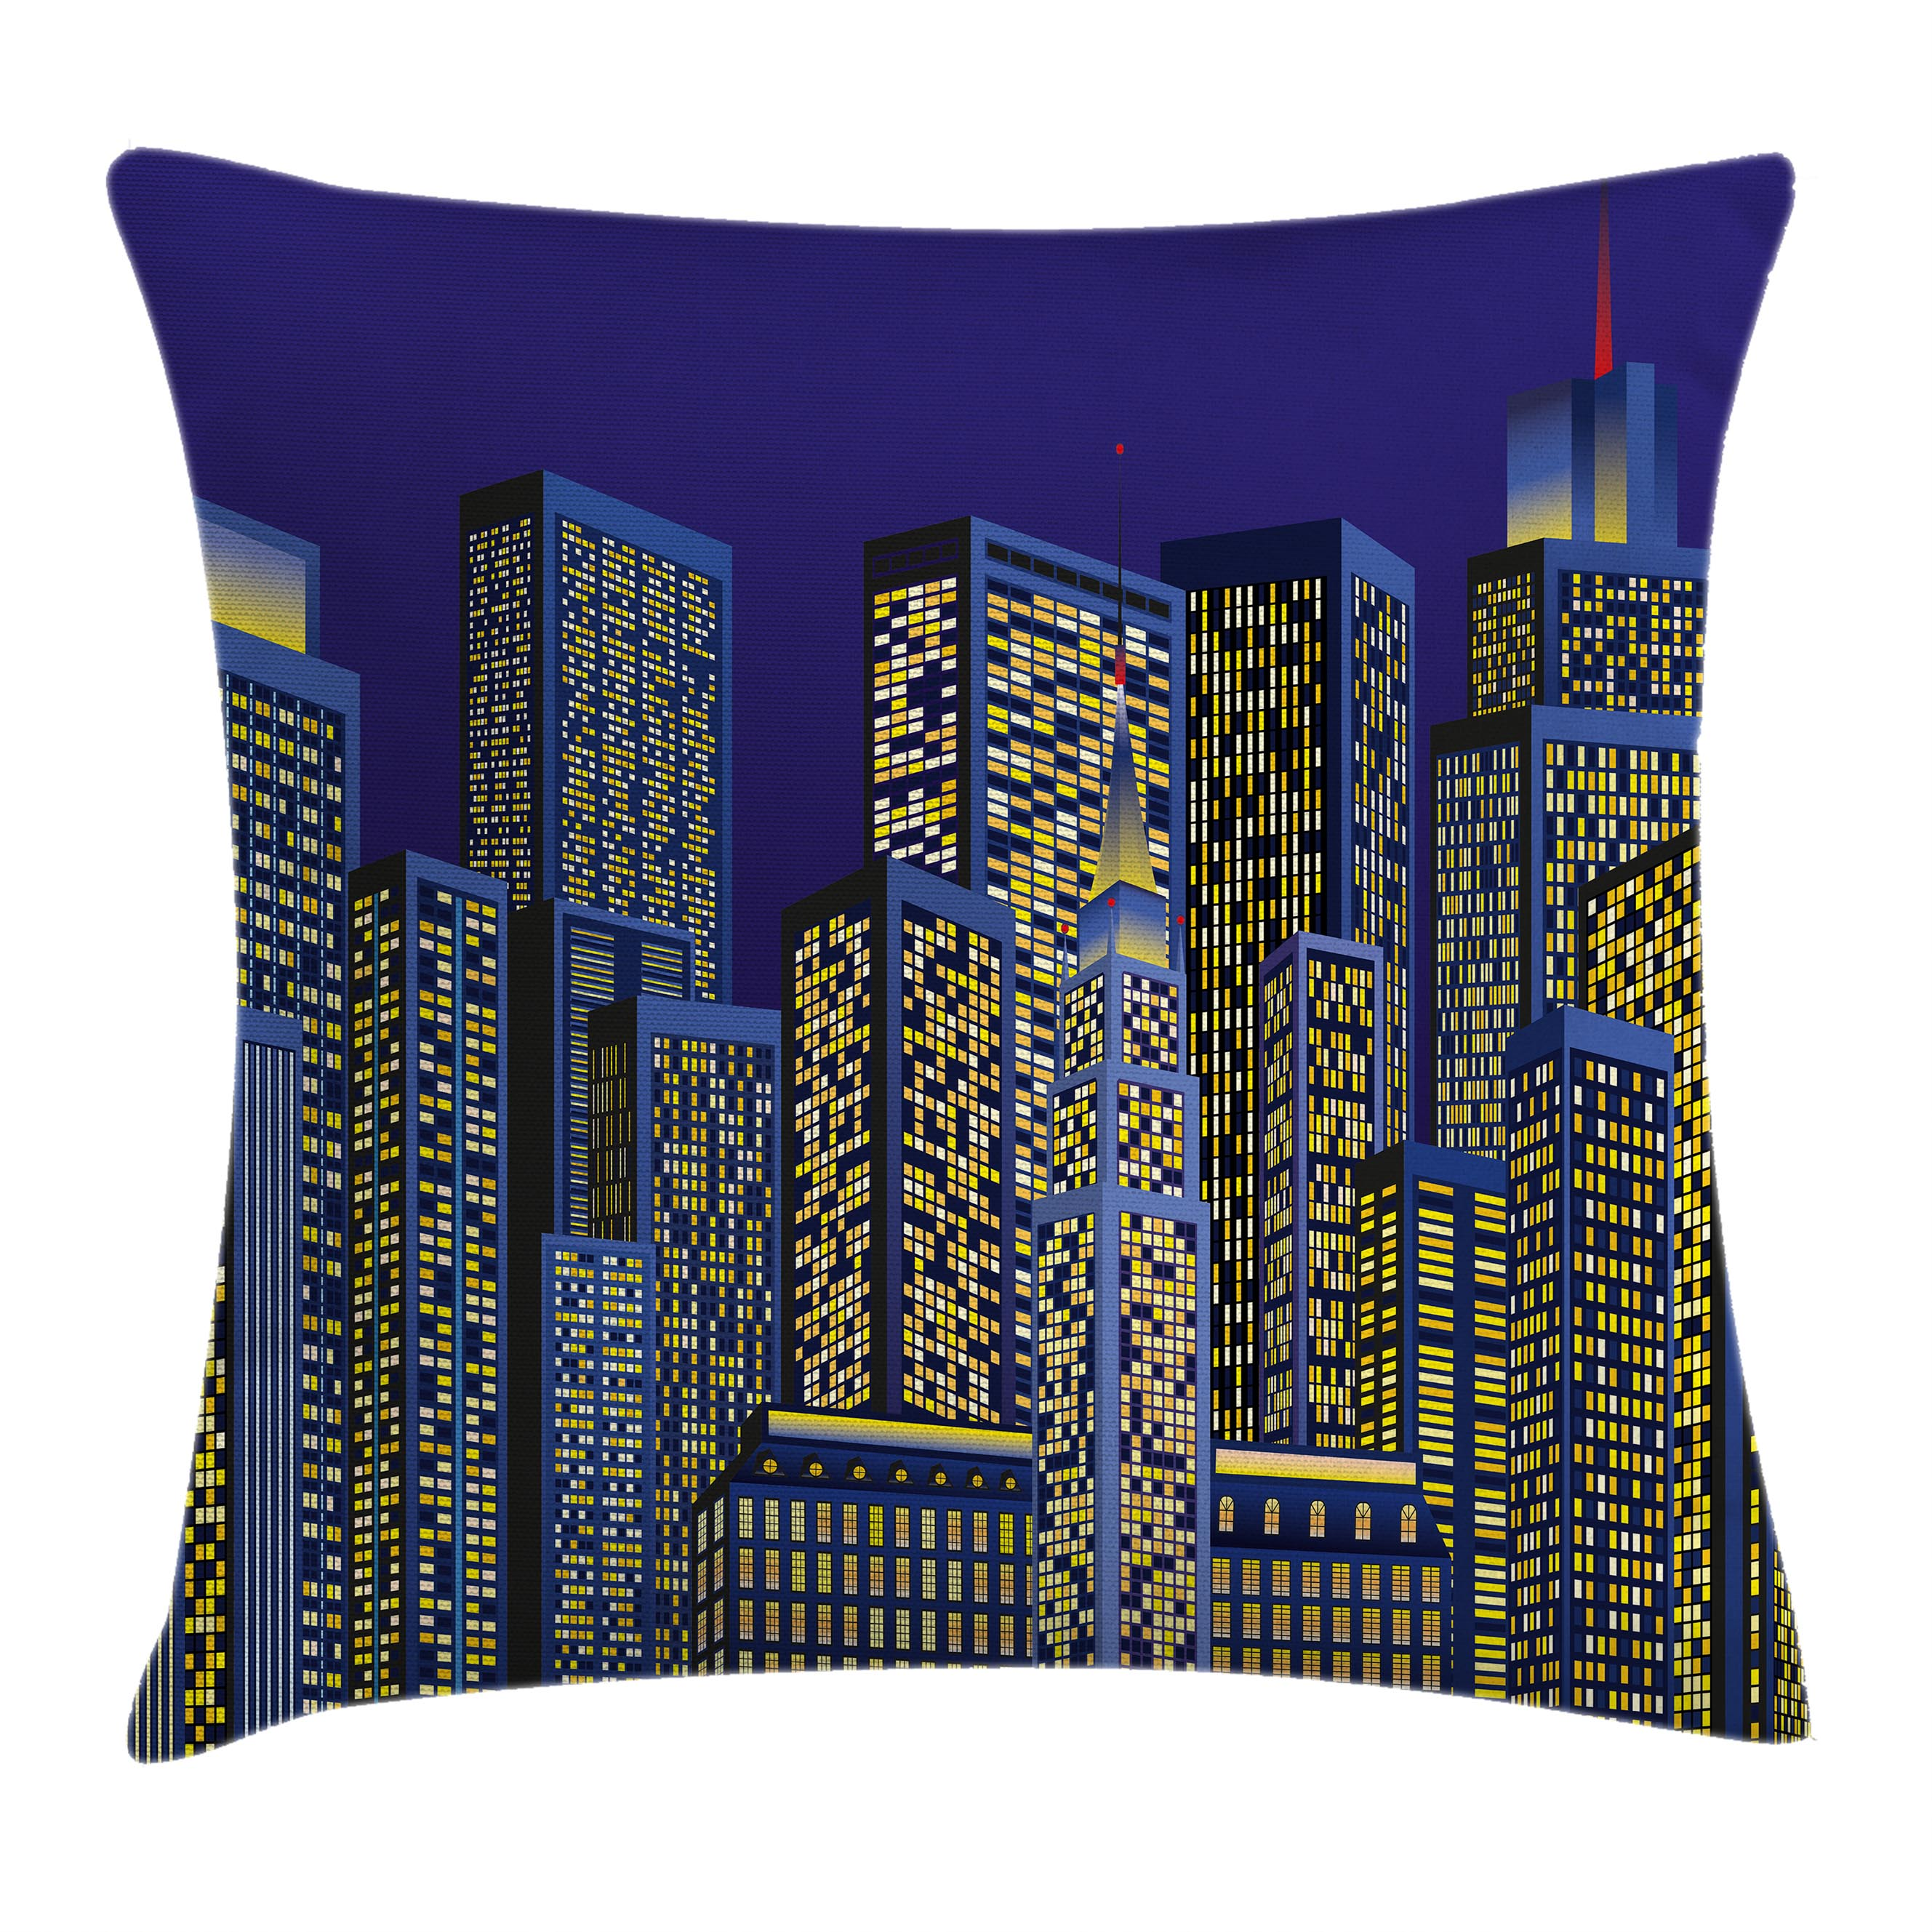 Digital Throw Pillow Cushion Cover, Cartoon Design Cityscape with Square Light Seemed Image Kids Room Artwork, Decorative Square Accent Pillow Case, 16 X 16 Inches, Dark Blue and Yellow, by Ambesonne